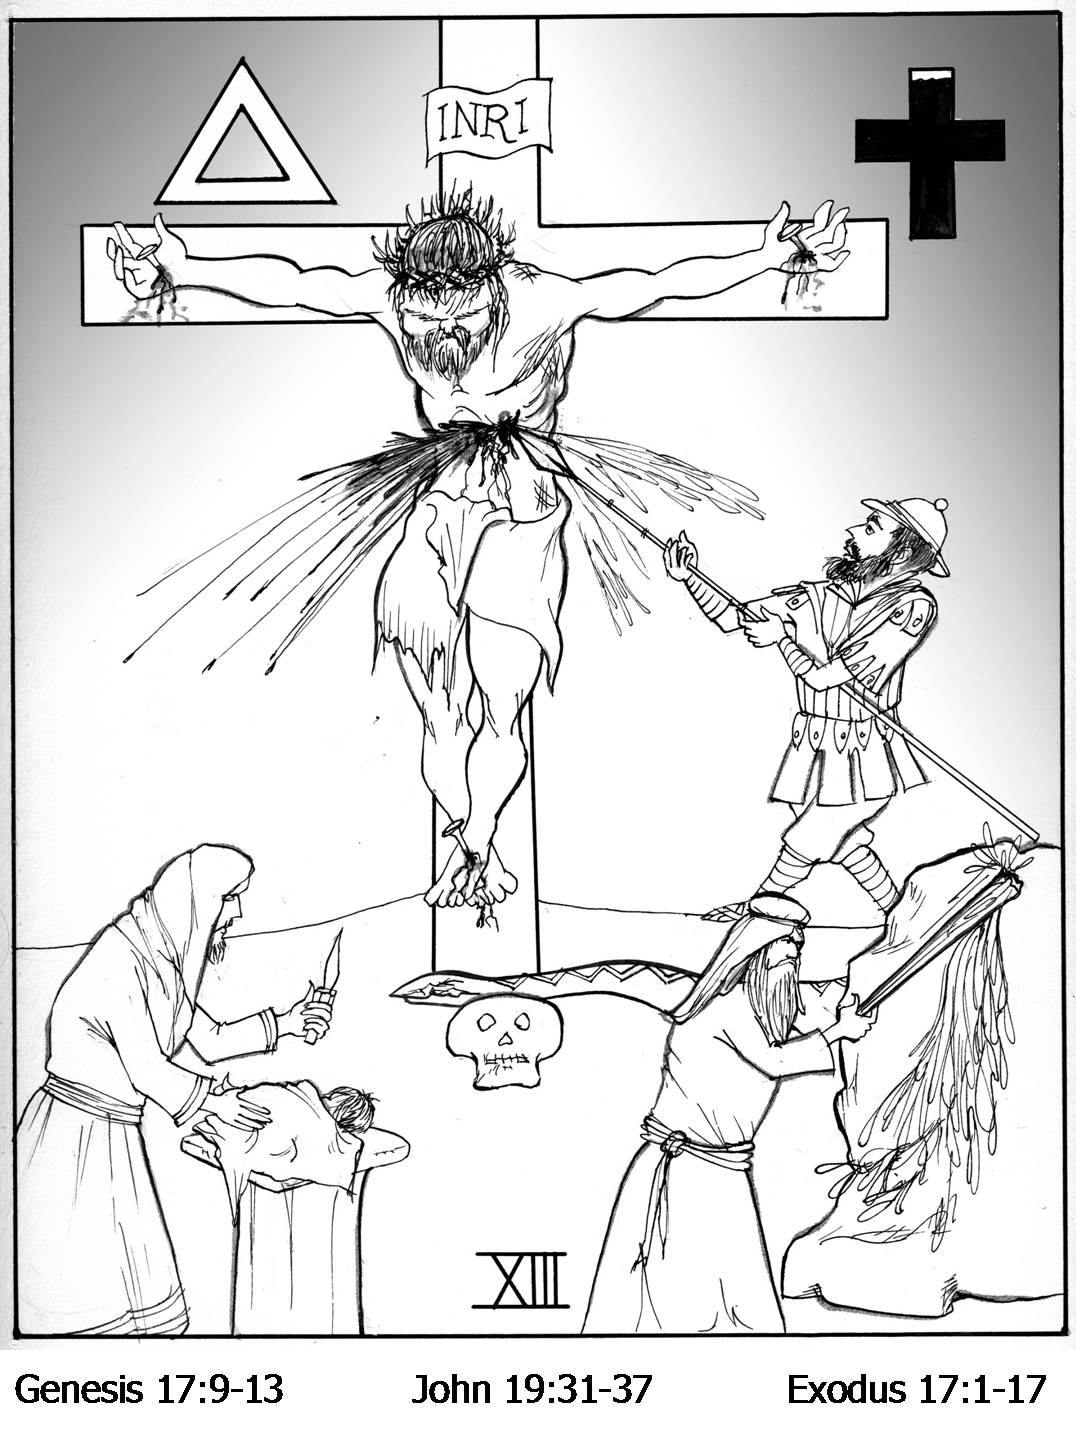 stations of the cross coloring pages get free high quality hd